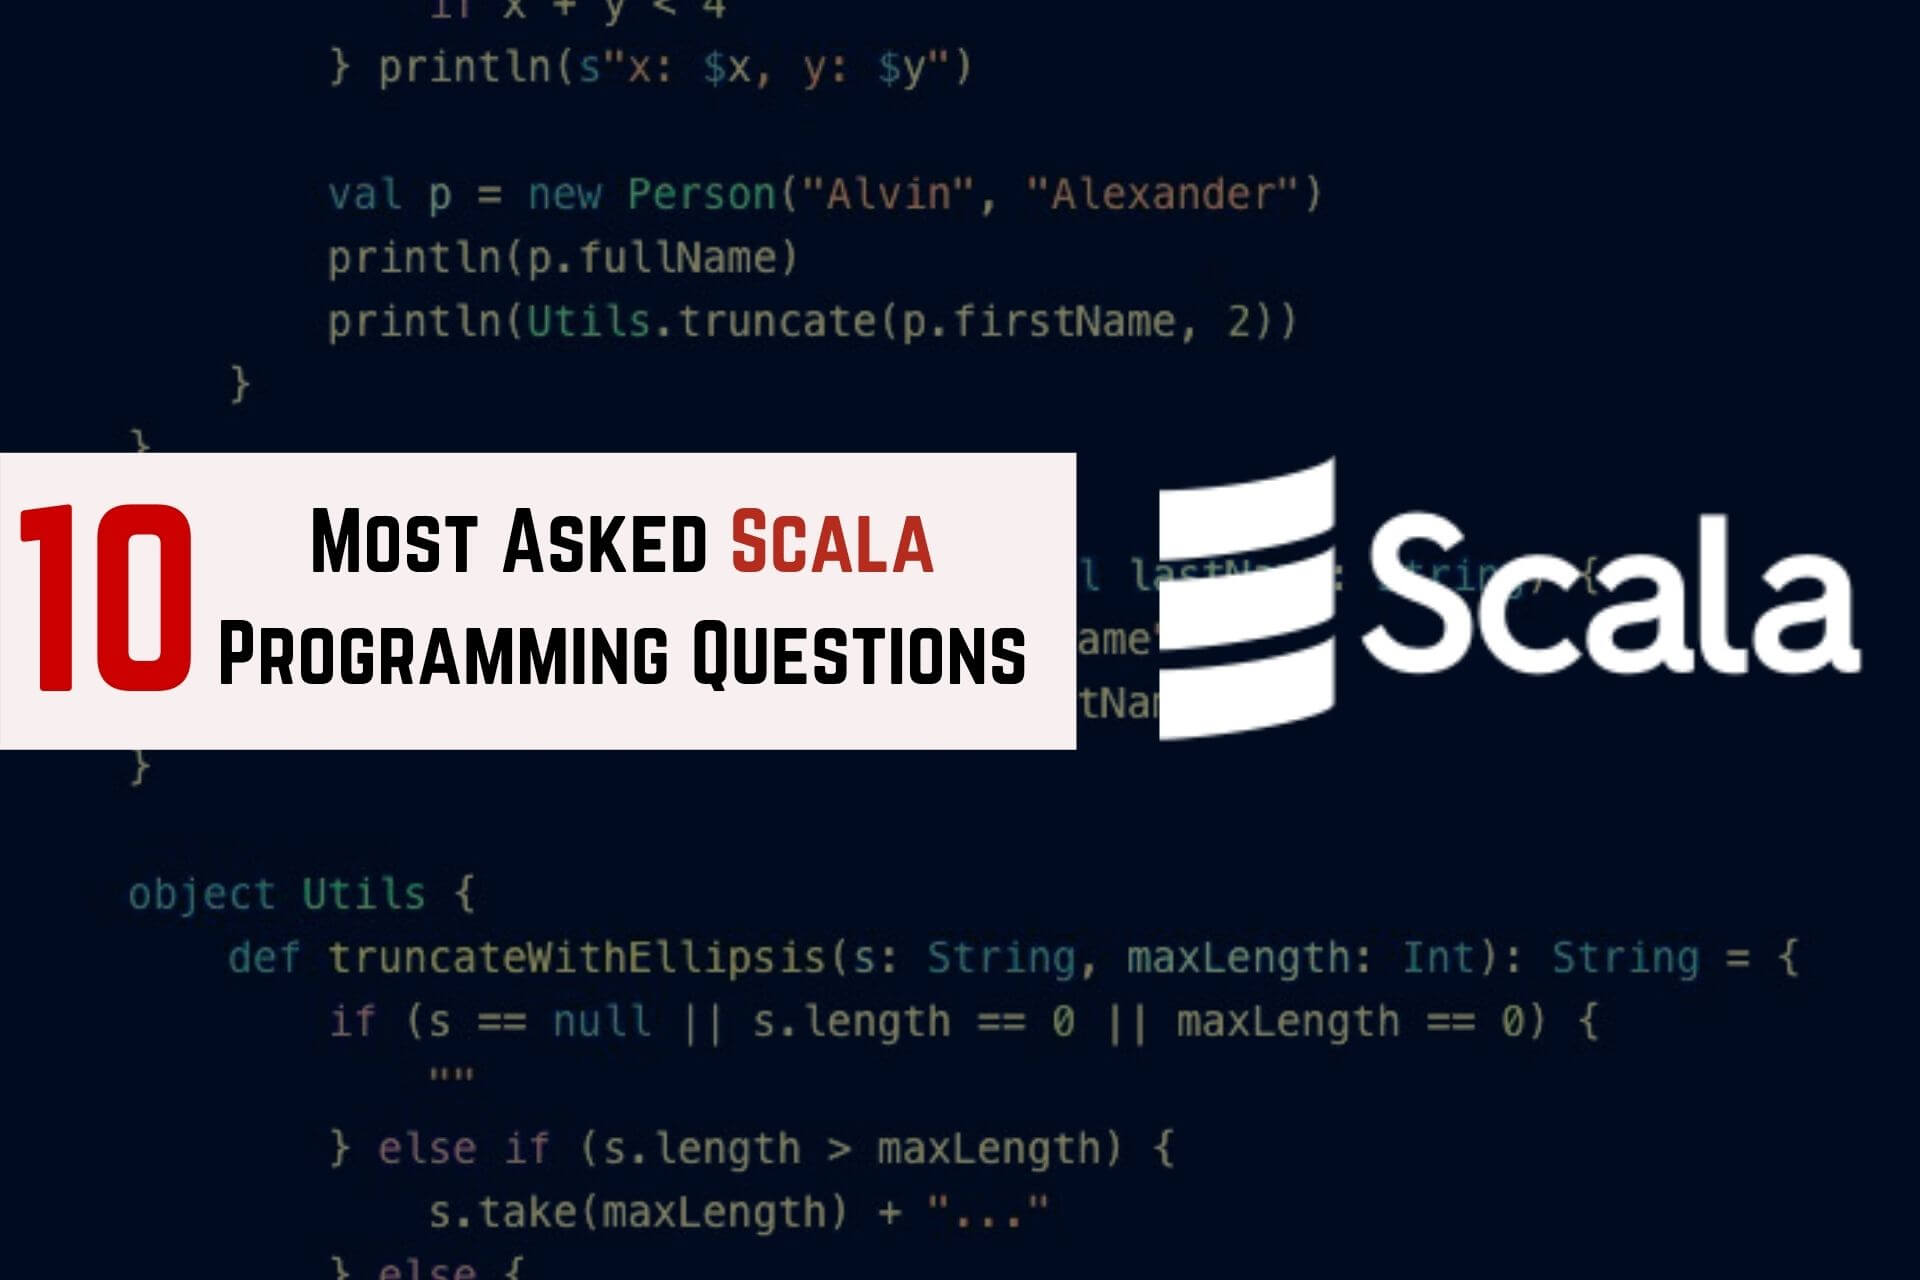 scala programming questions